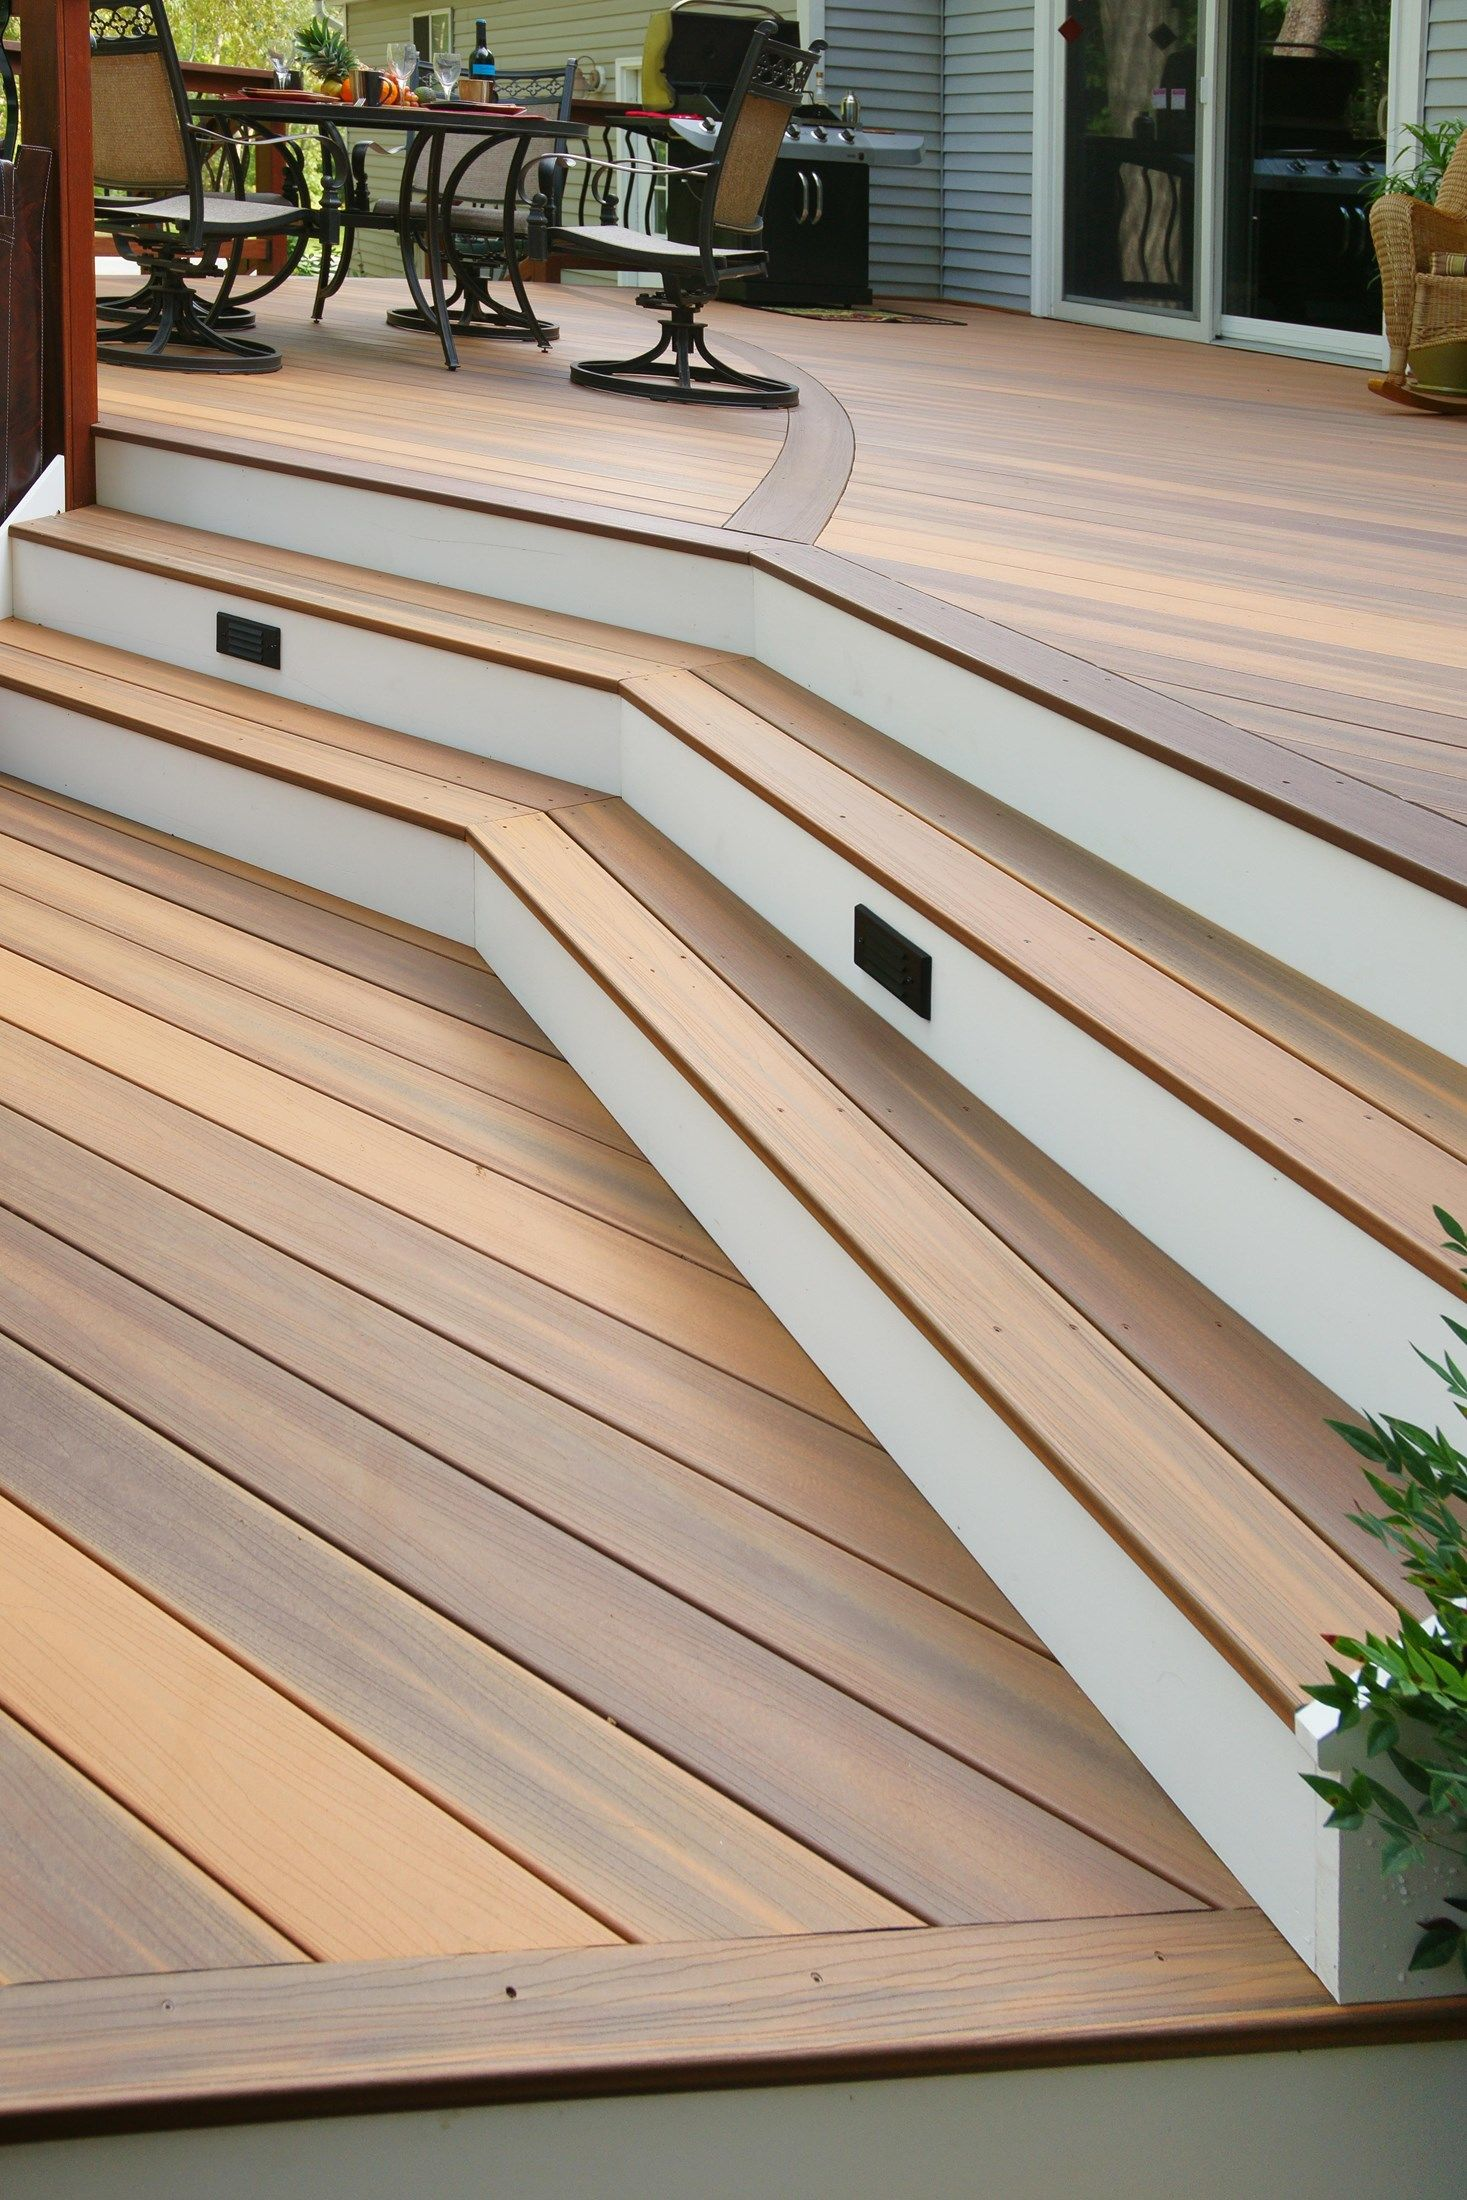 Davidson curved deck - Picture 1415